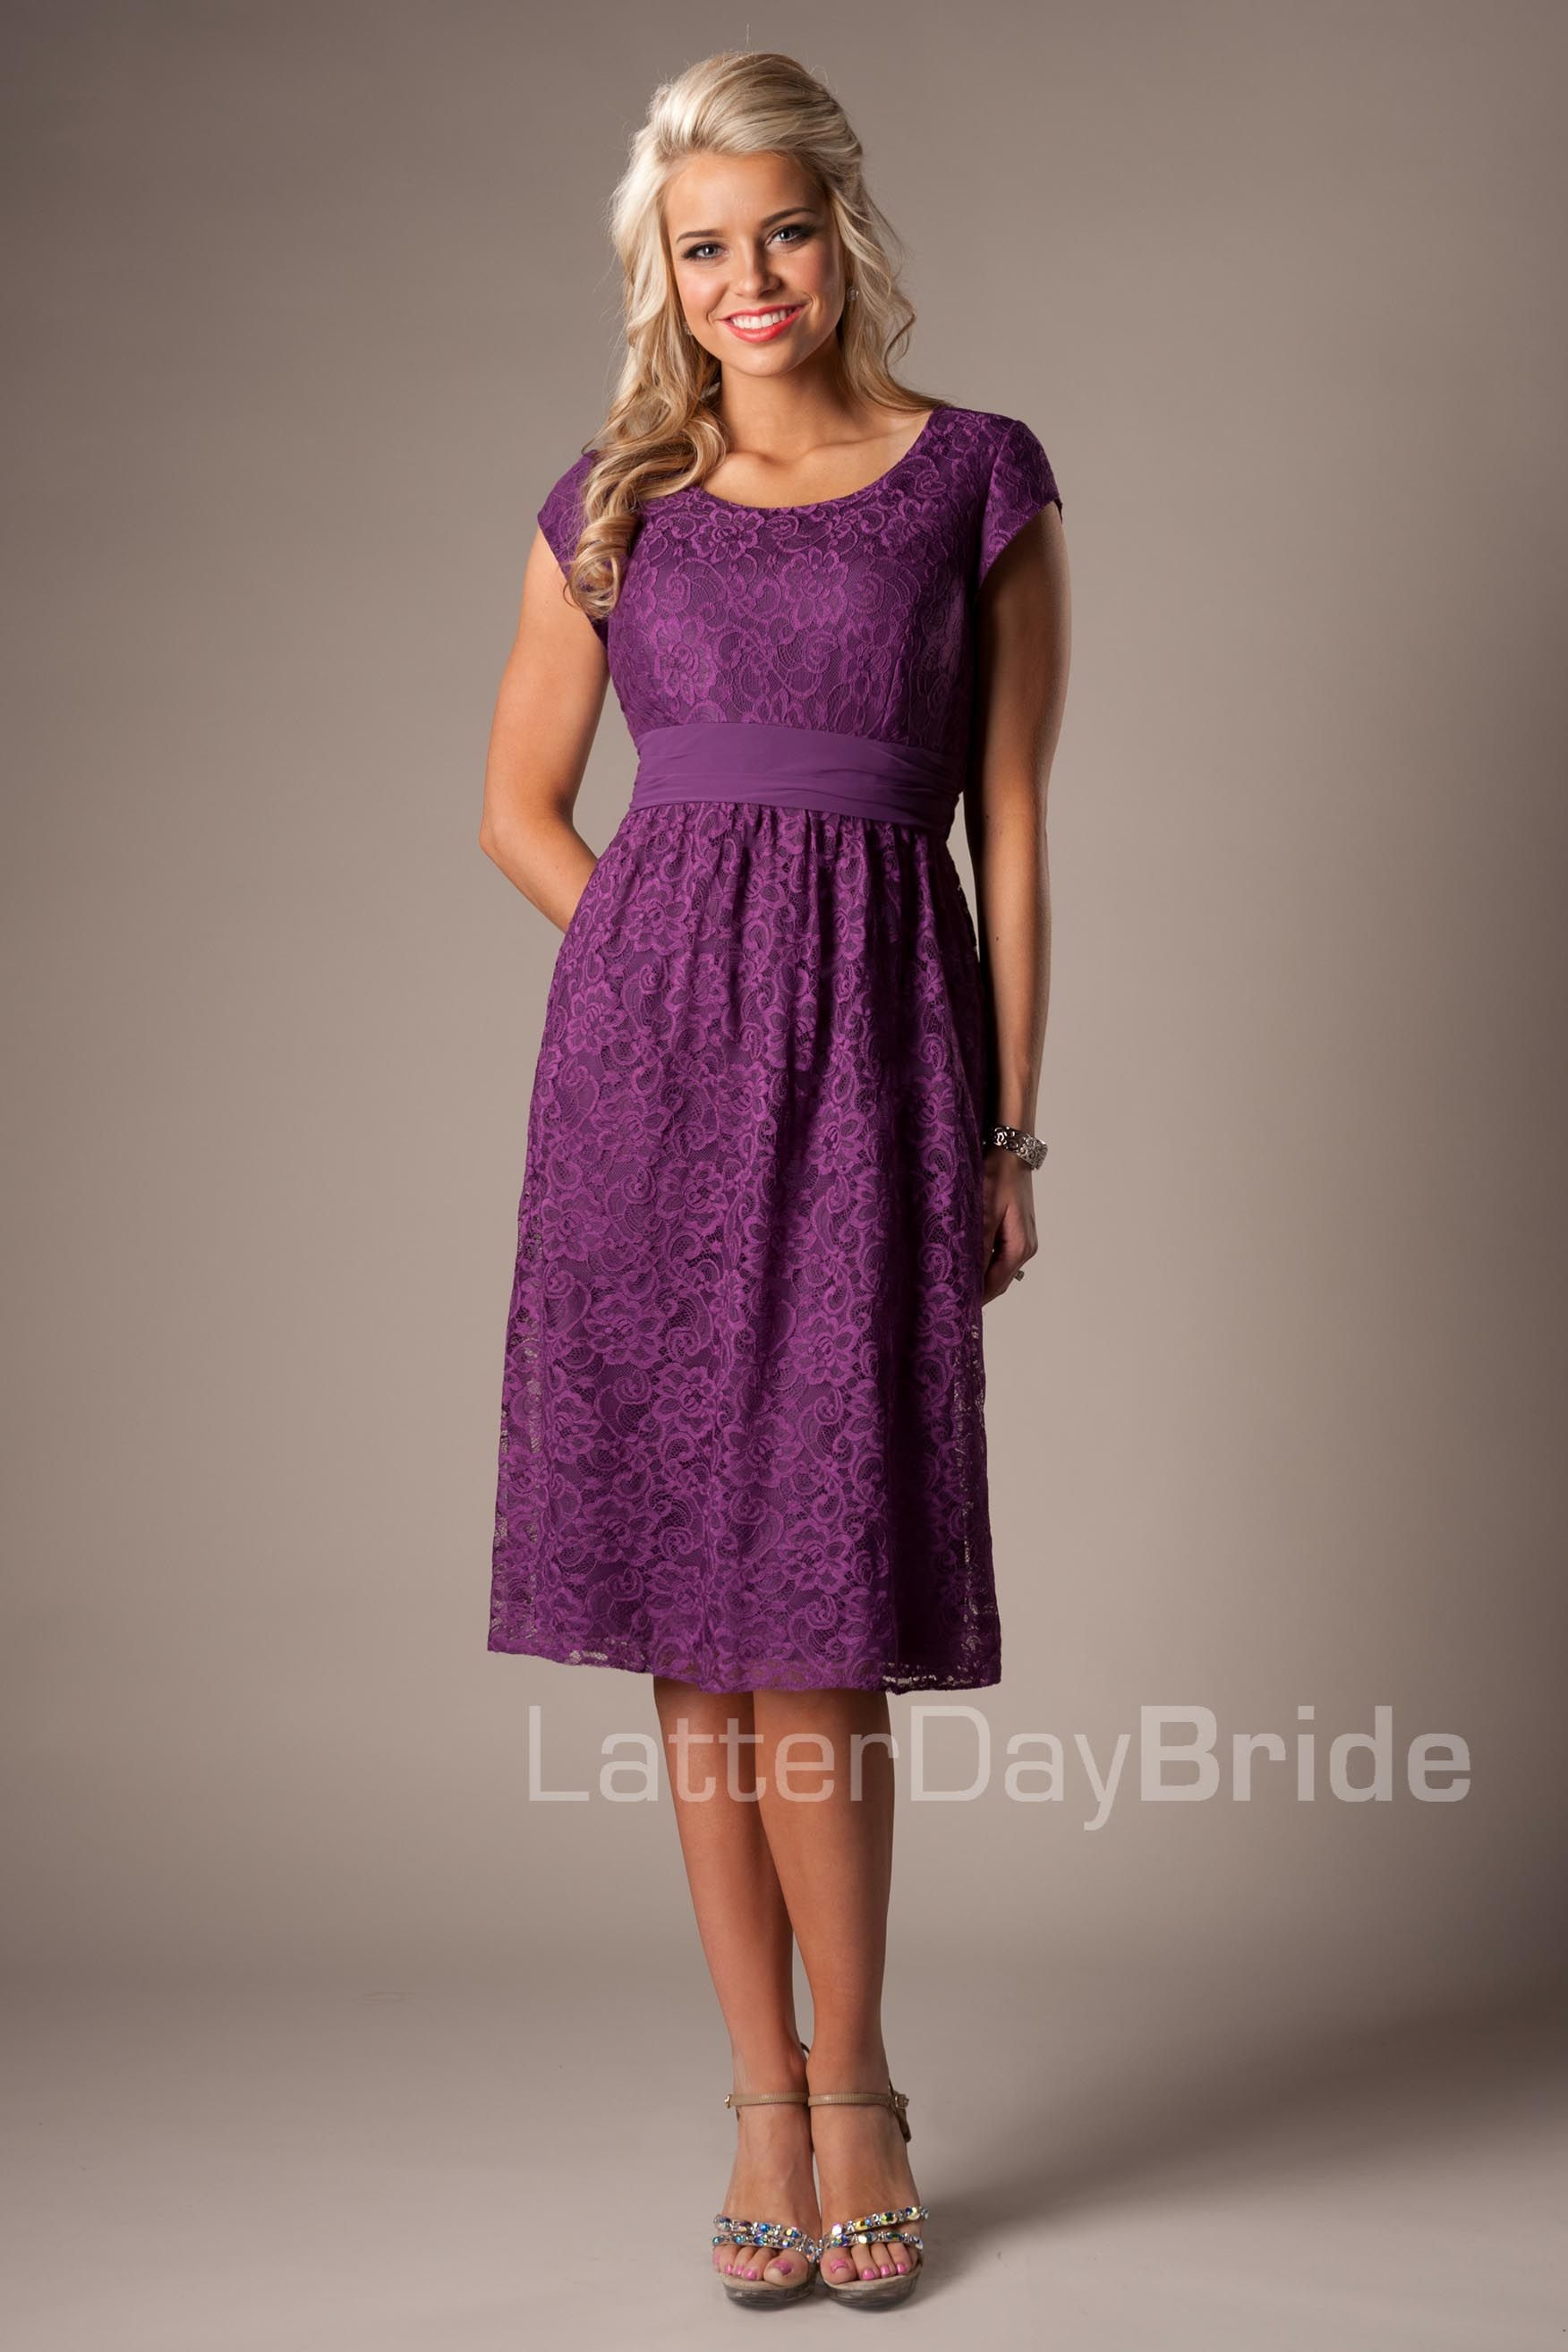 beautiful bridesmaid dress. I love the color and the lace ...